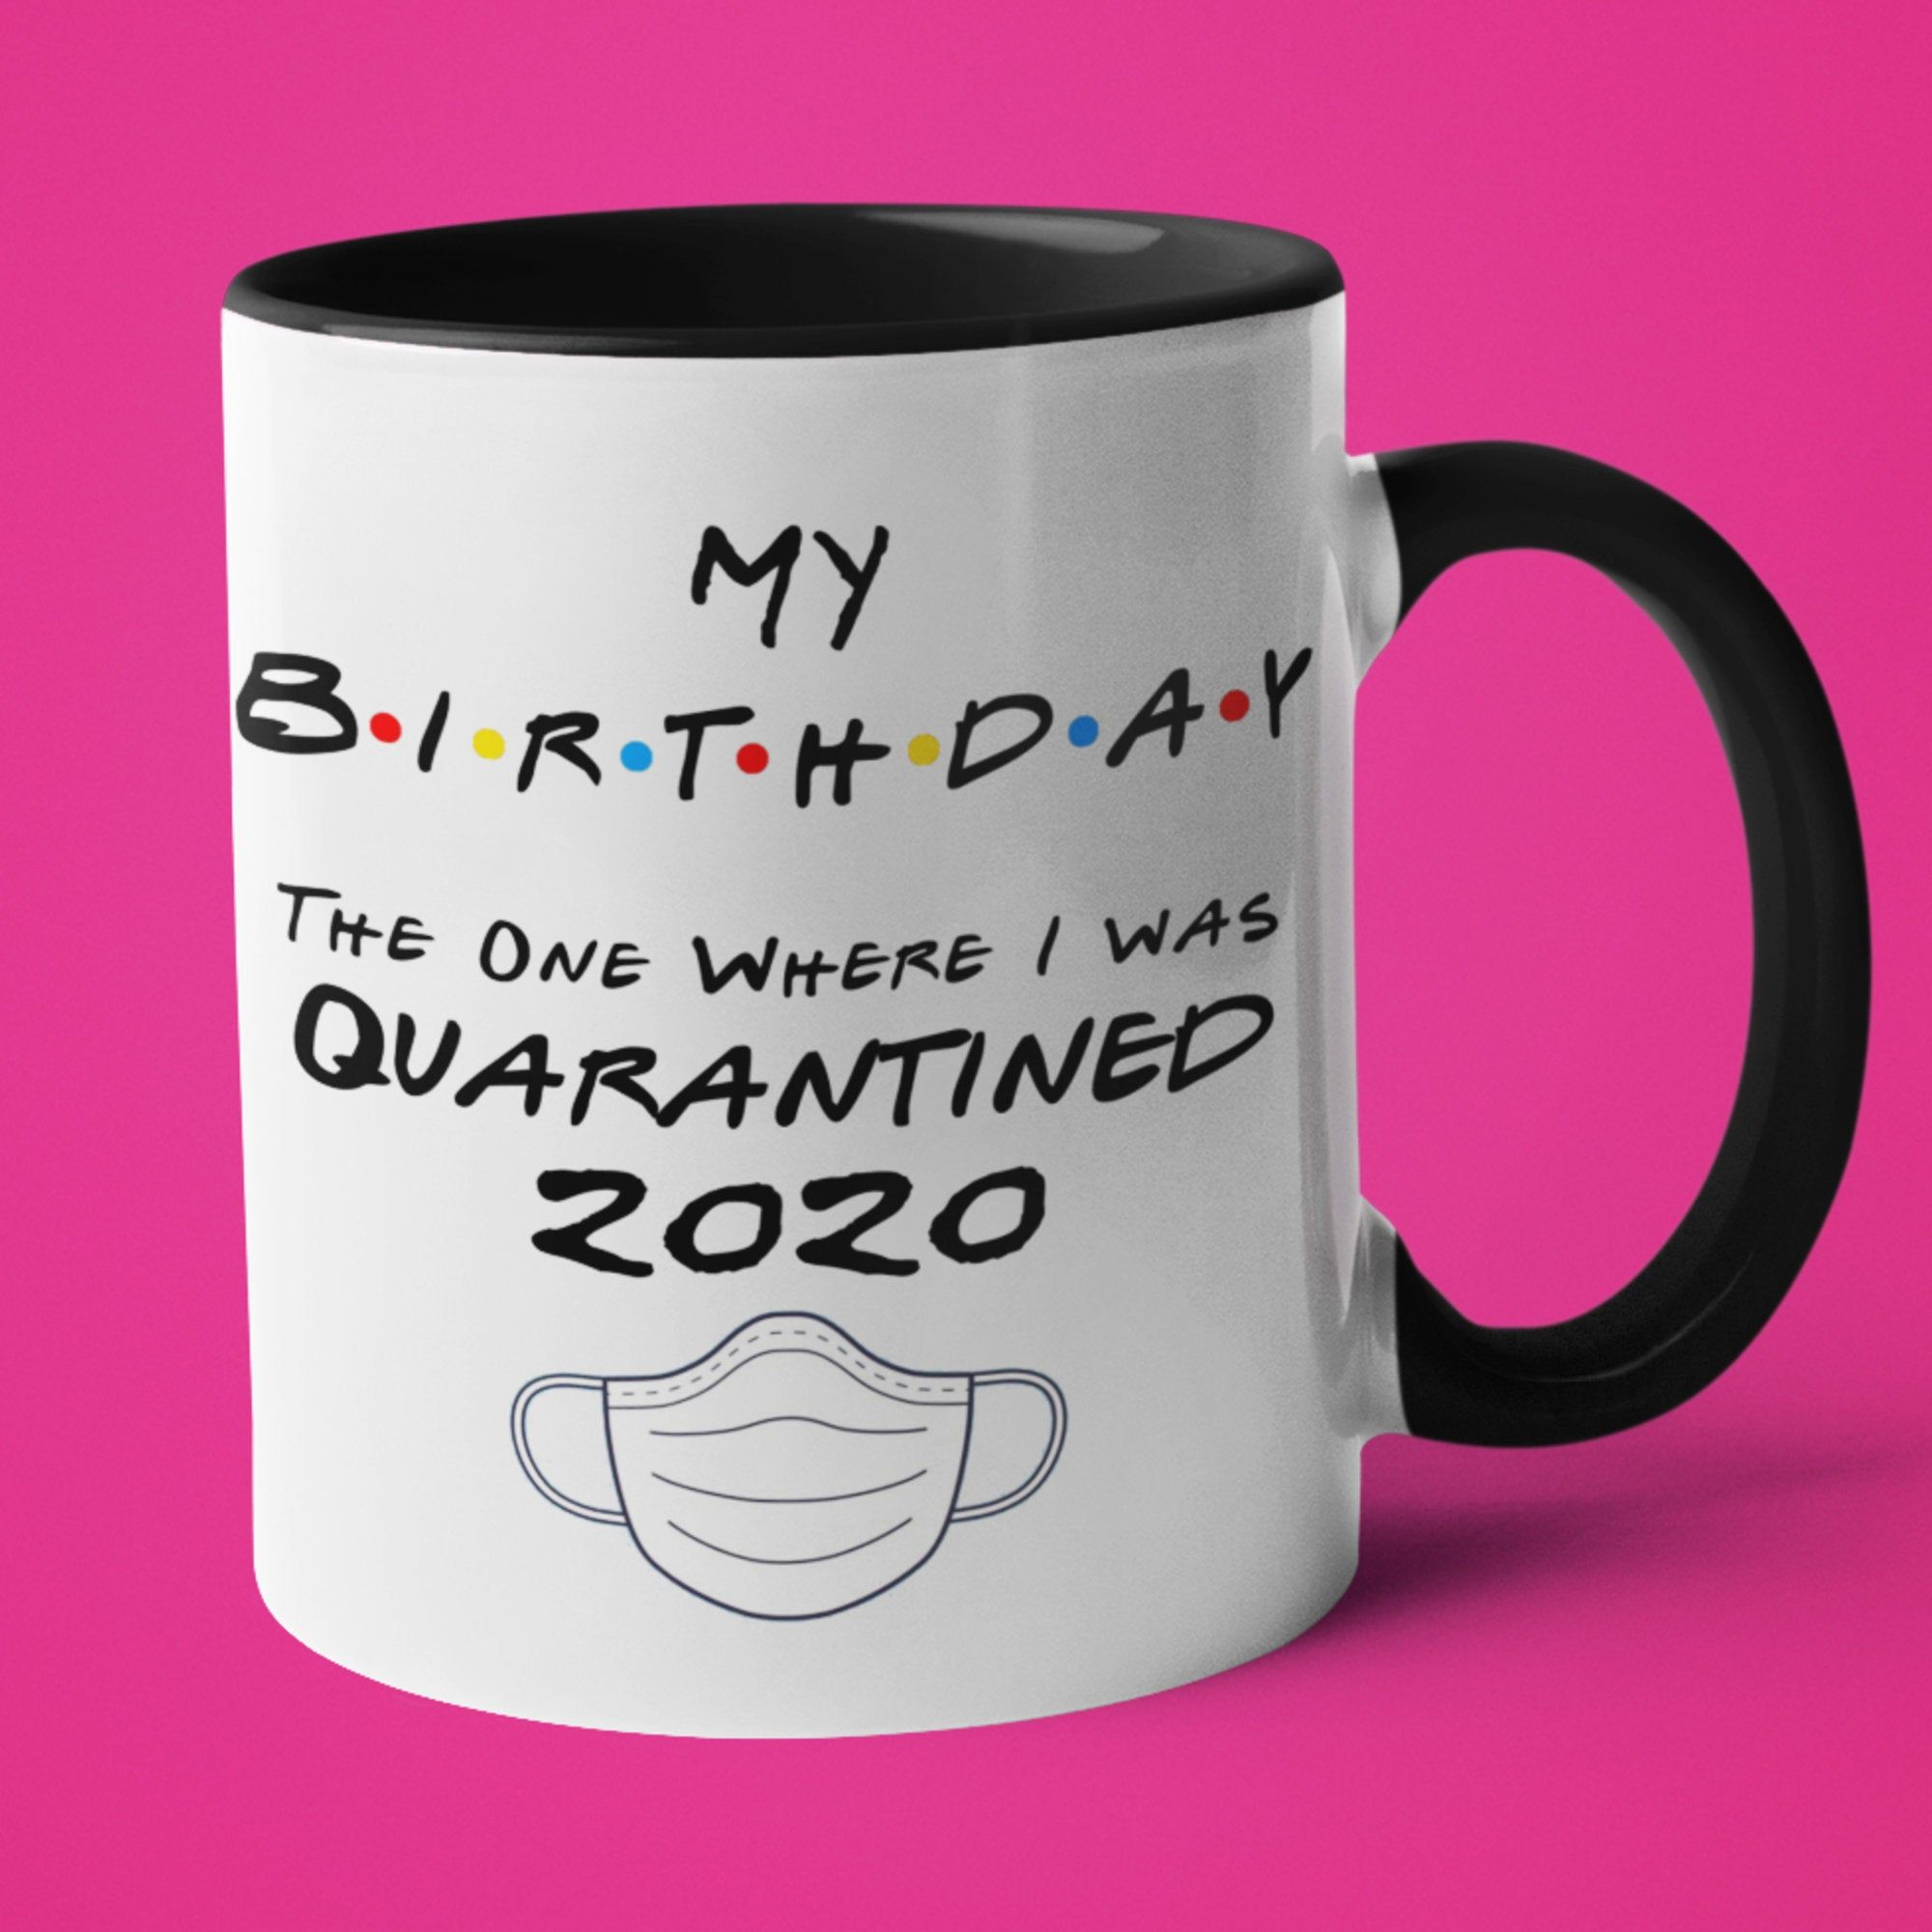 My Birthday 2020 The One Where I was Quarantined Friends